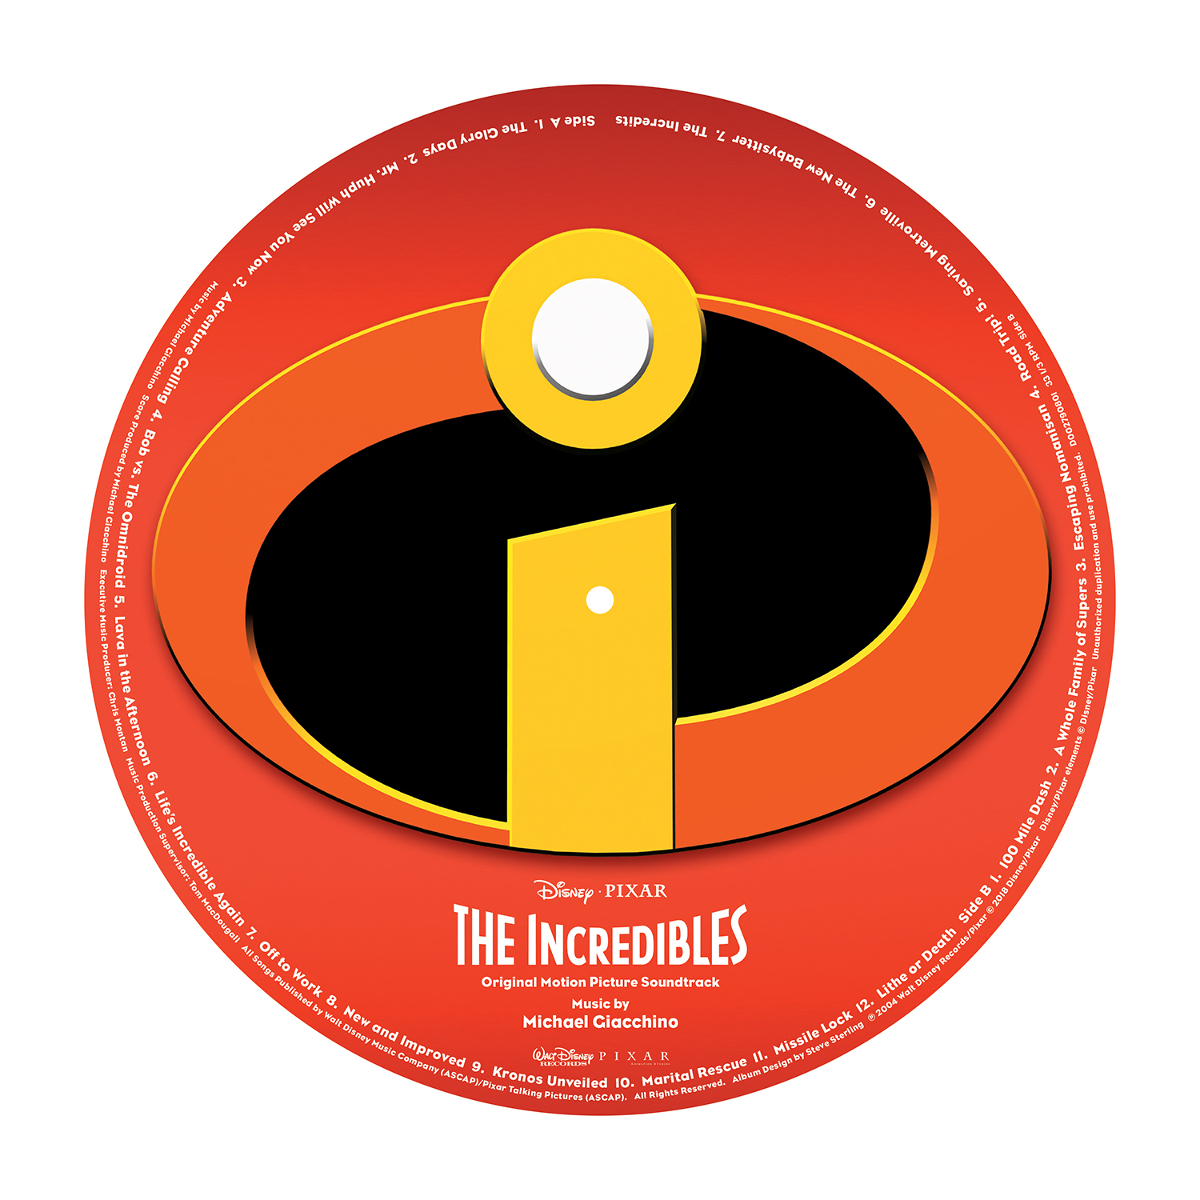 The Incredibles Picture Vinyl